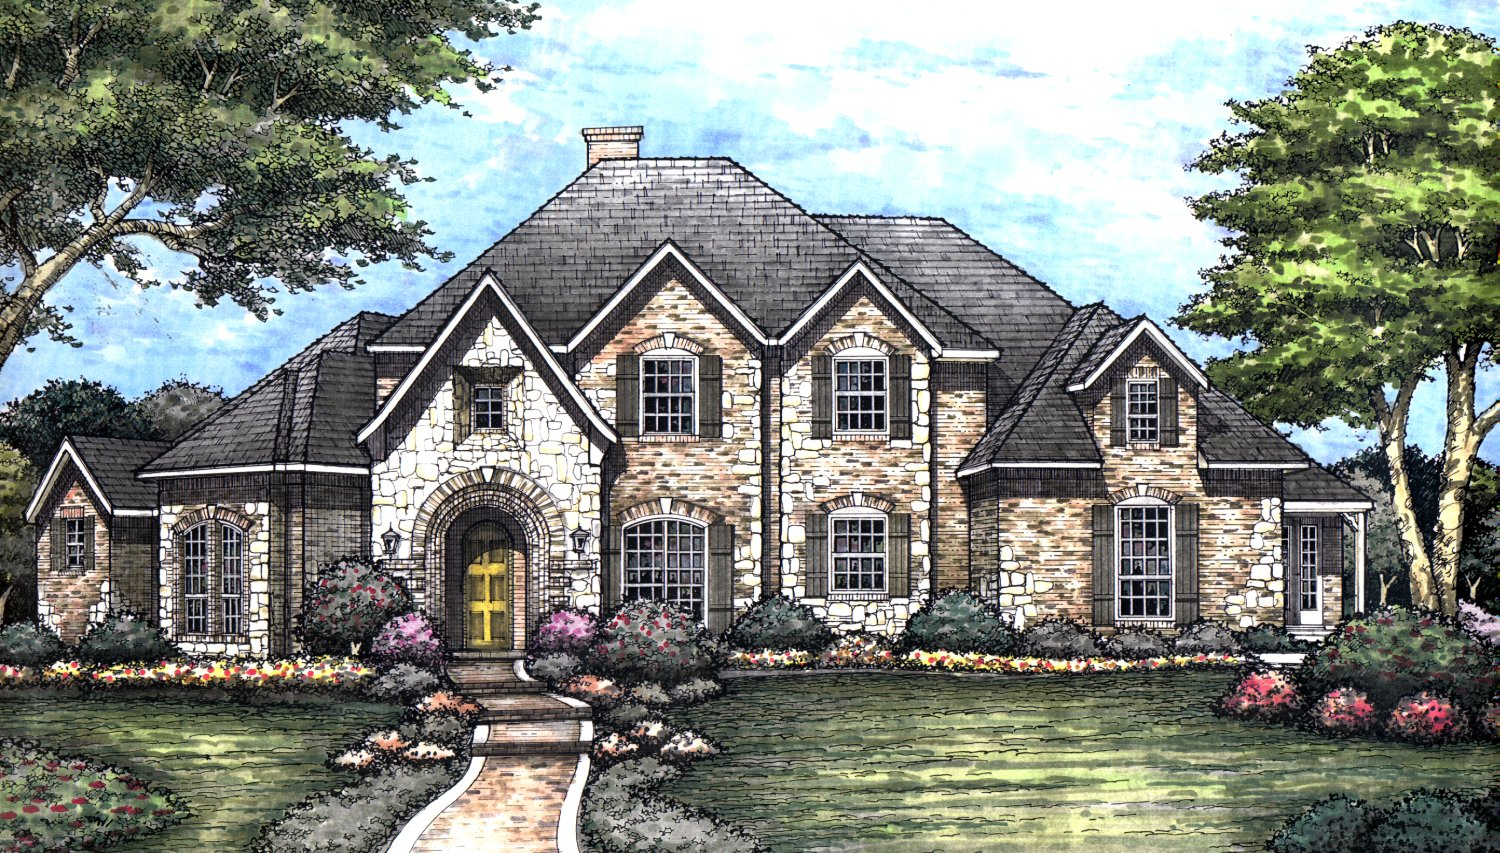 u3951r | texas house plans - over 700 proven home designs online